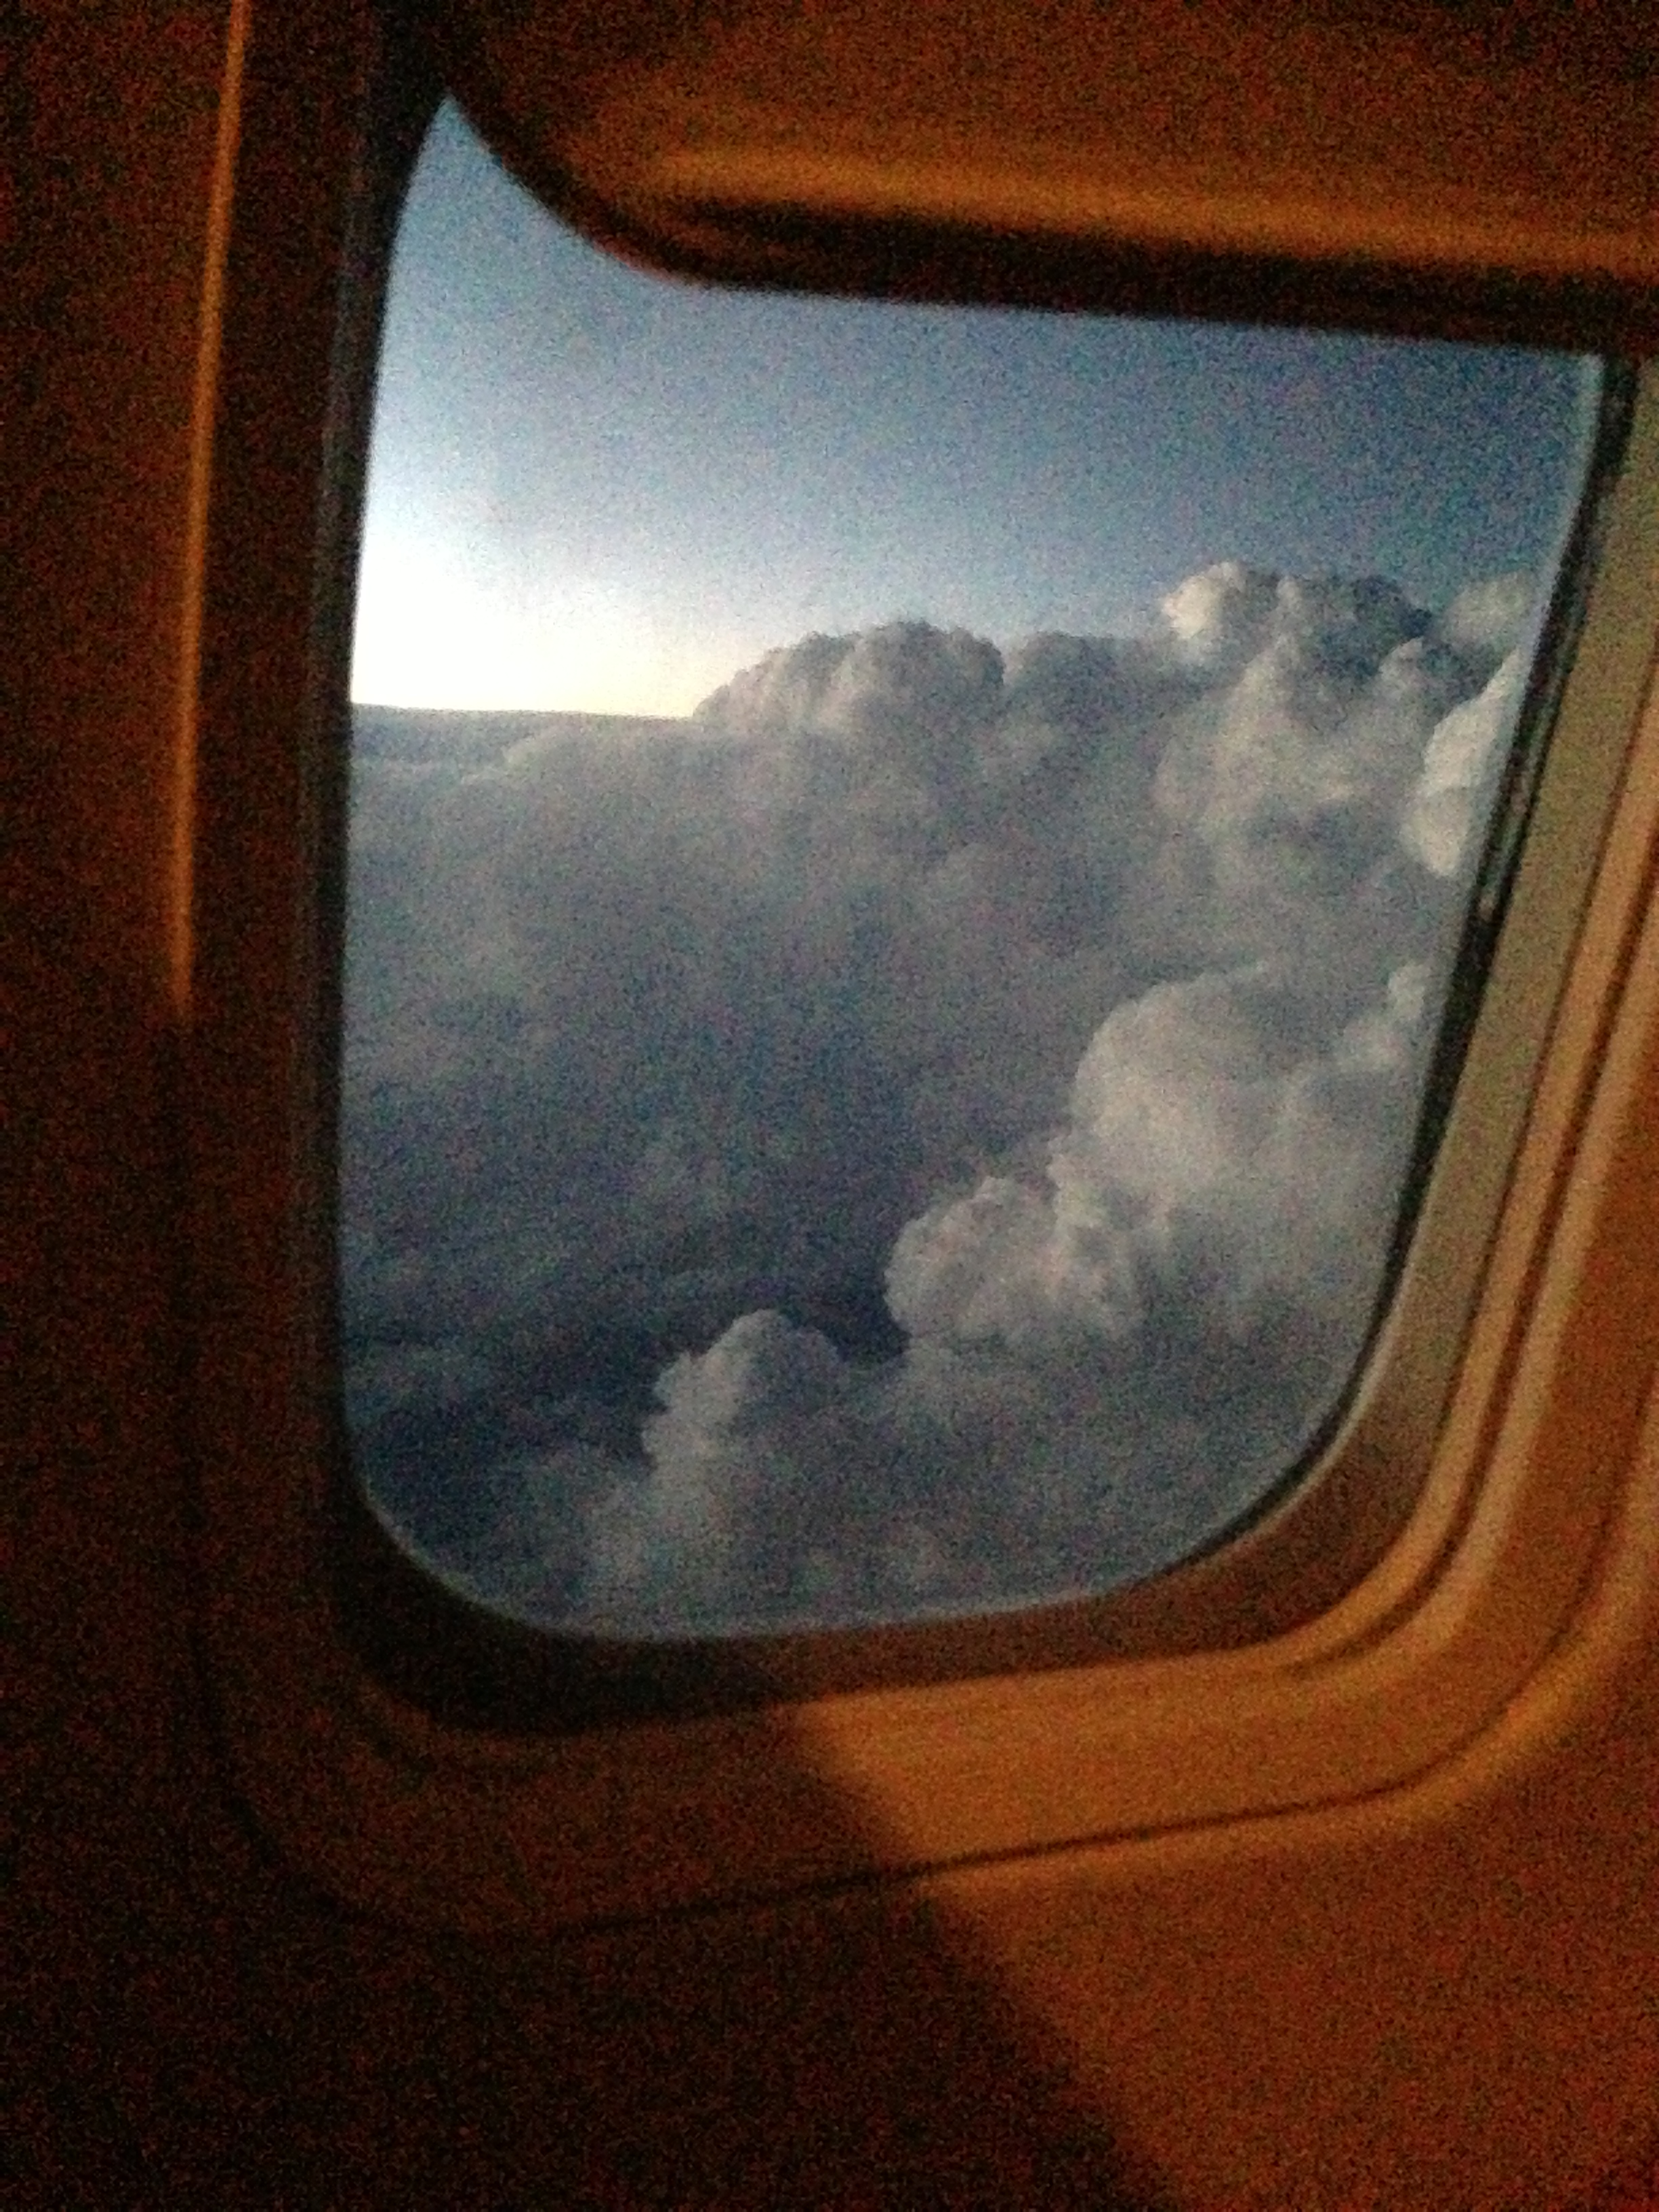 Thunder storm below us